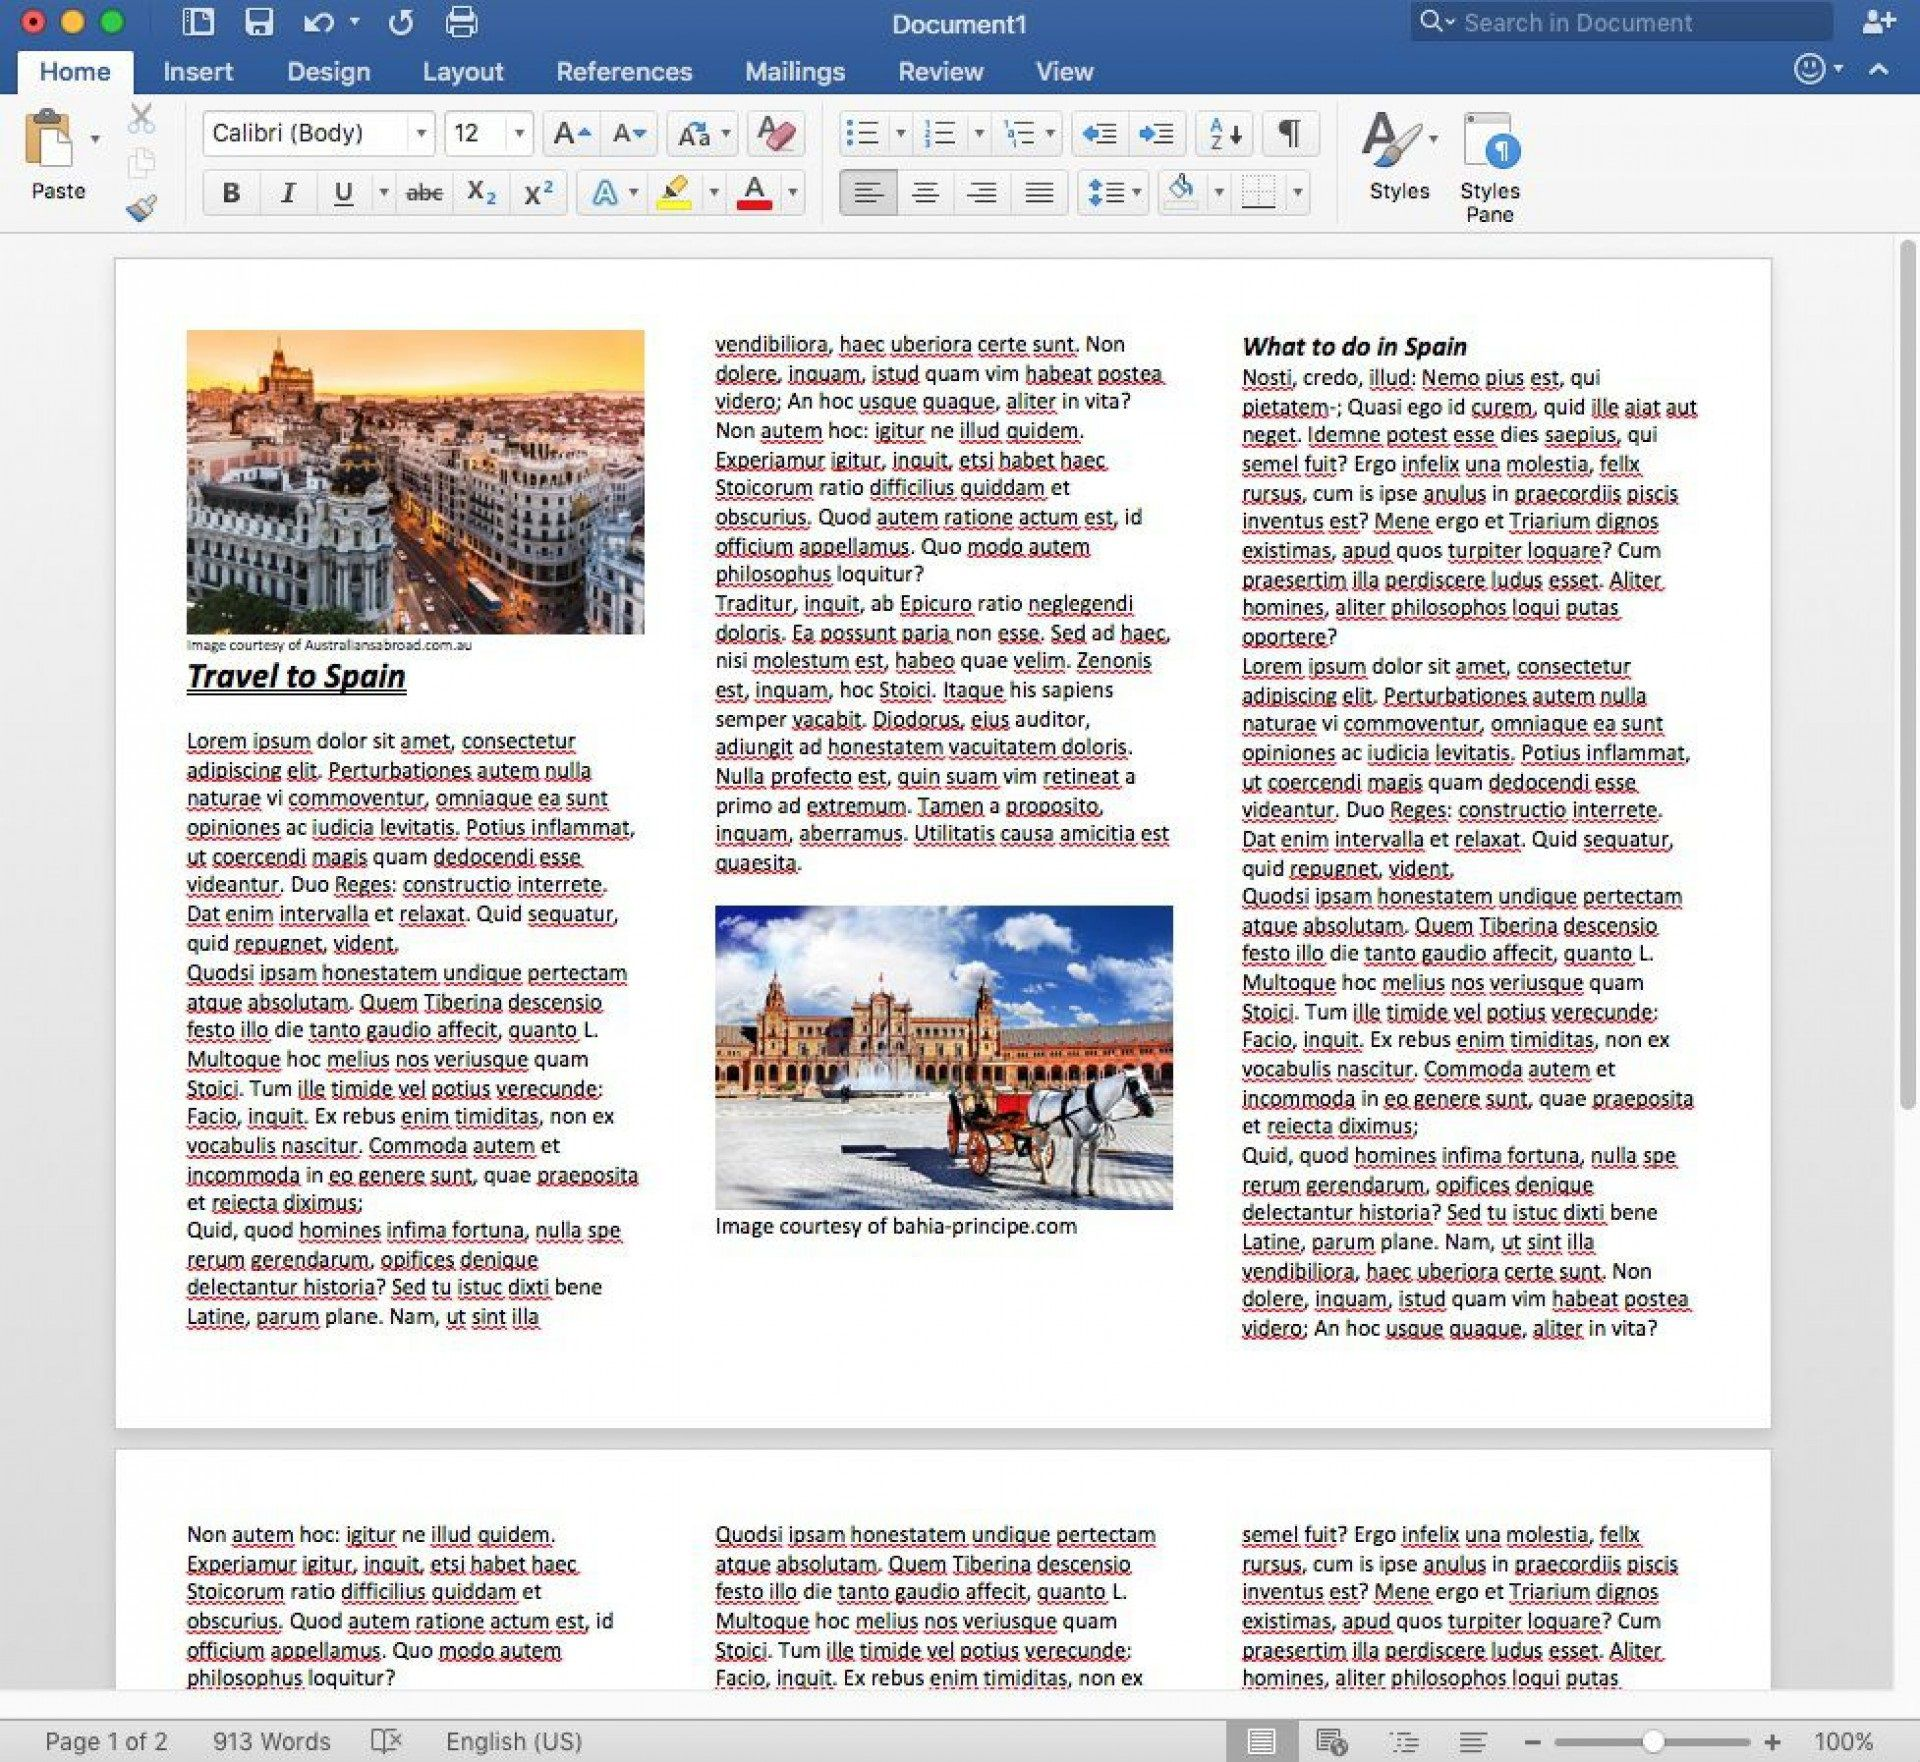 008 Staggering M Word Tri Fold Brochure Template Image  Microsoft Free DownloadFull